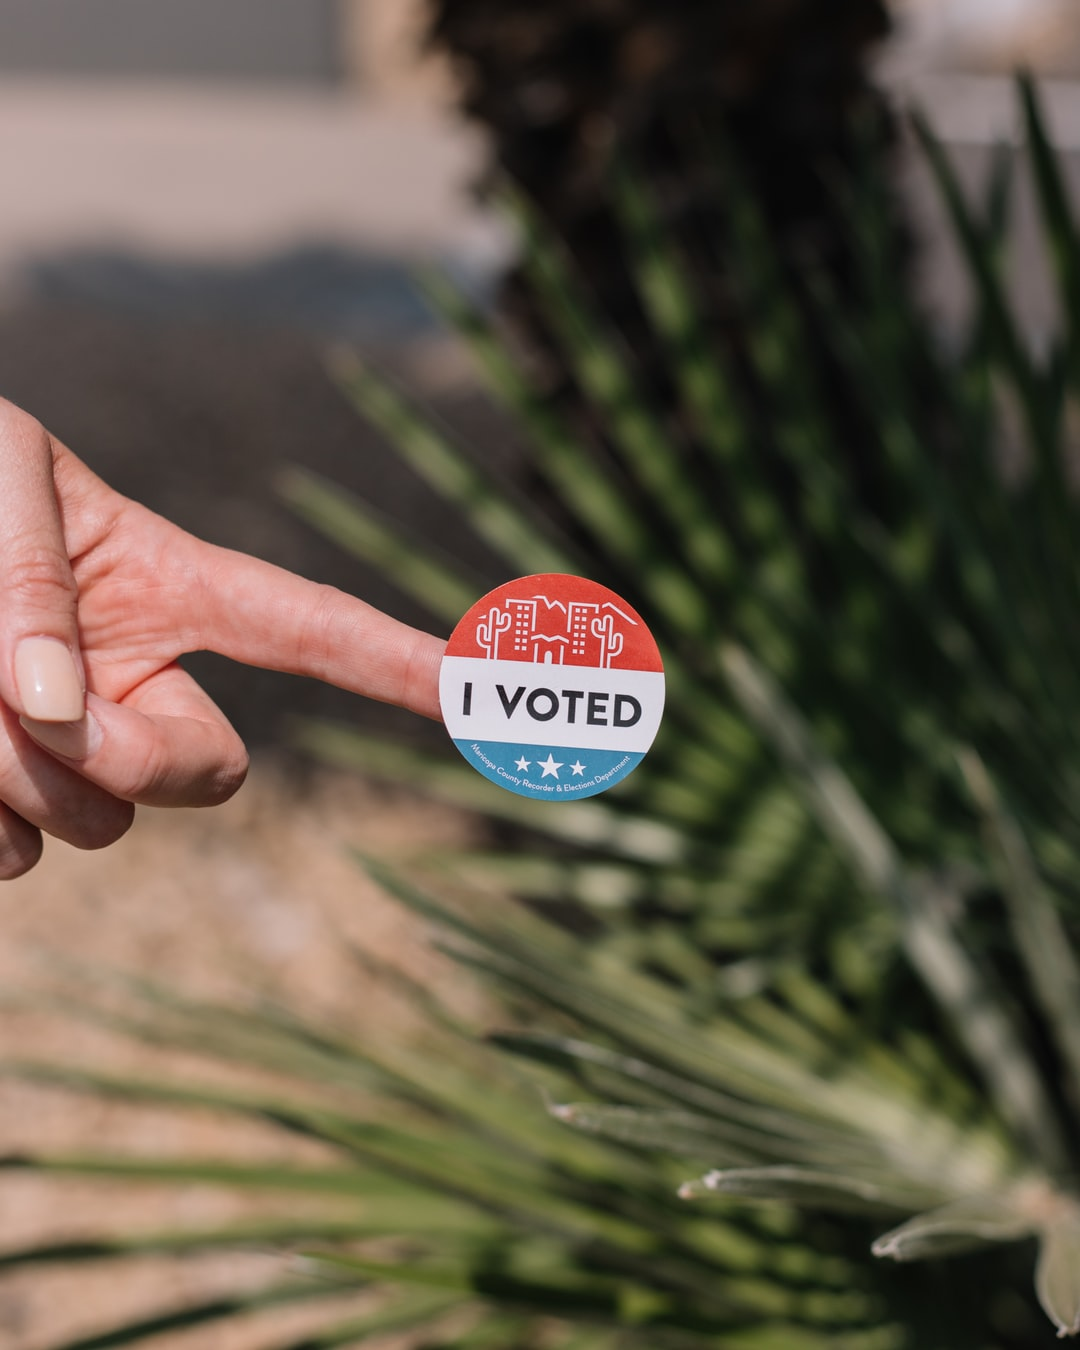 Arizona desert themed I voted voting sticker with palm tree and desert landscaping in background.